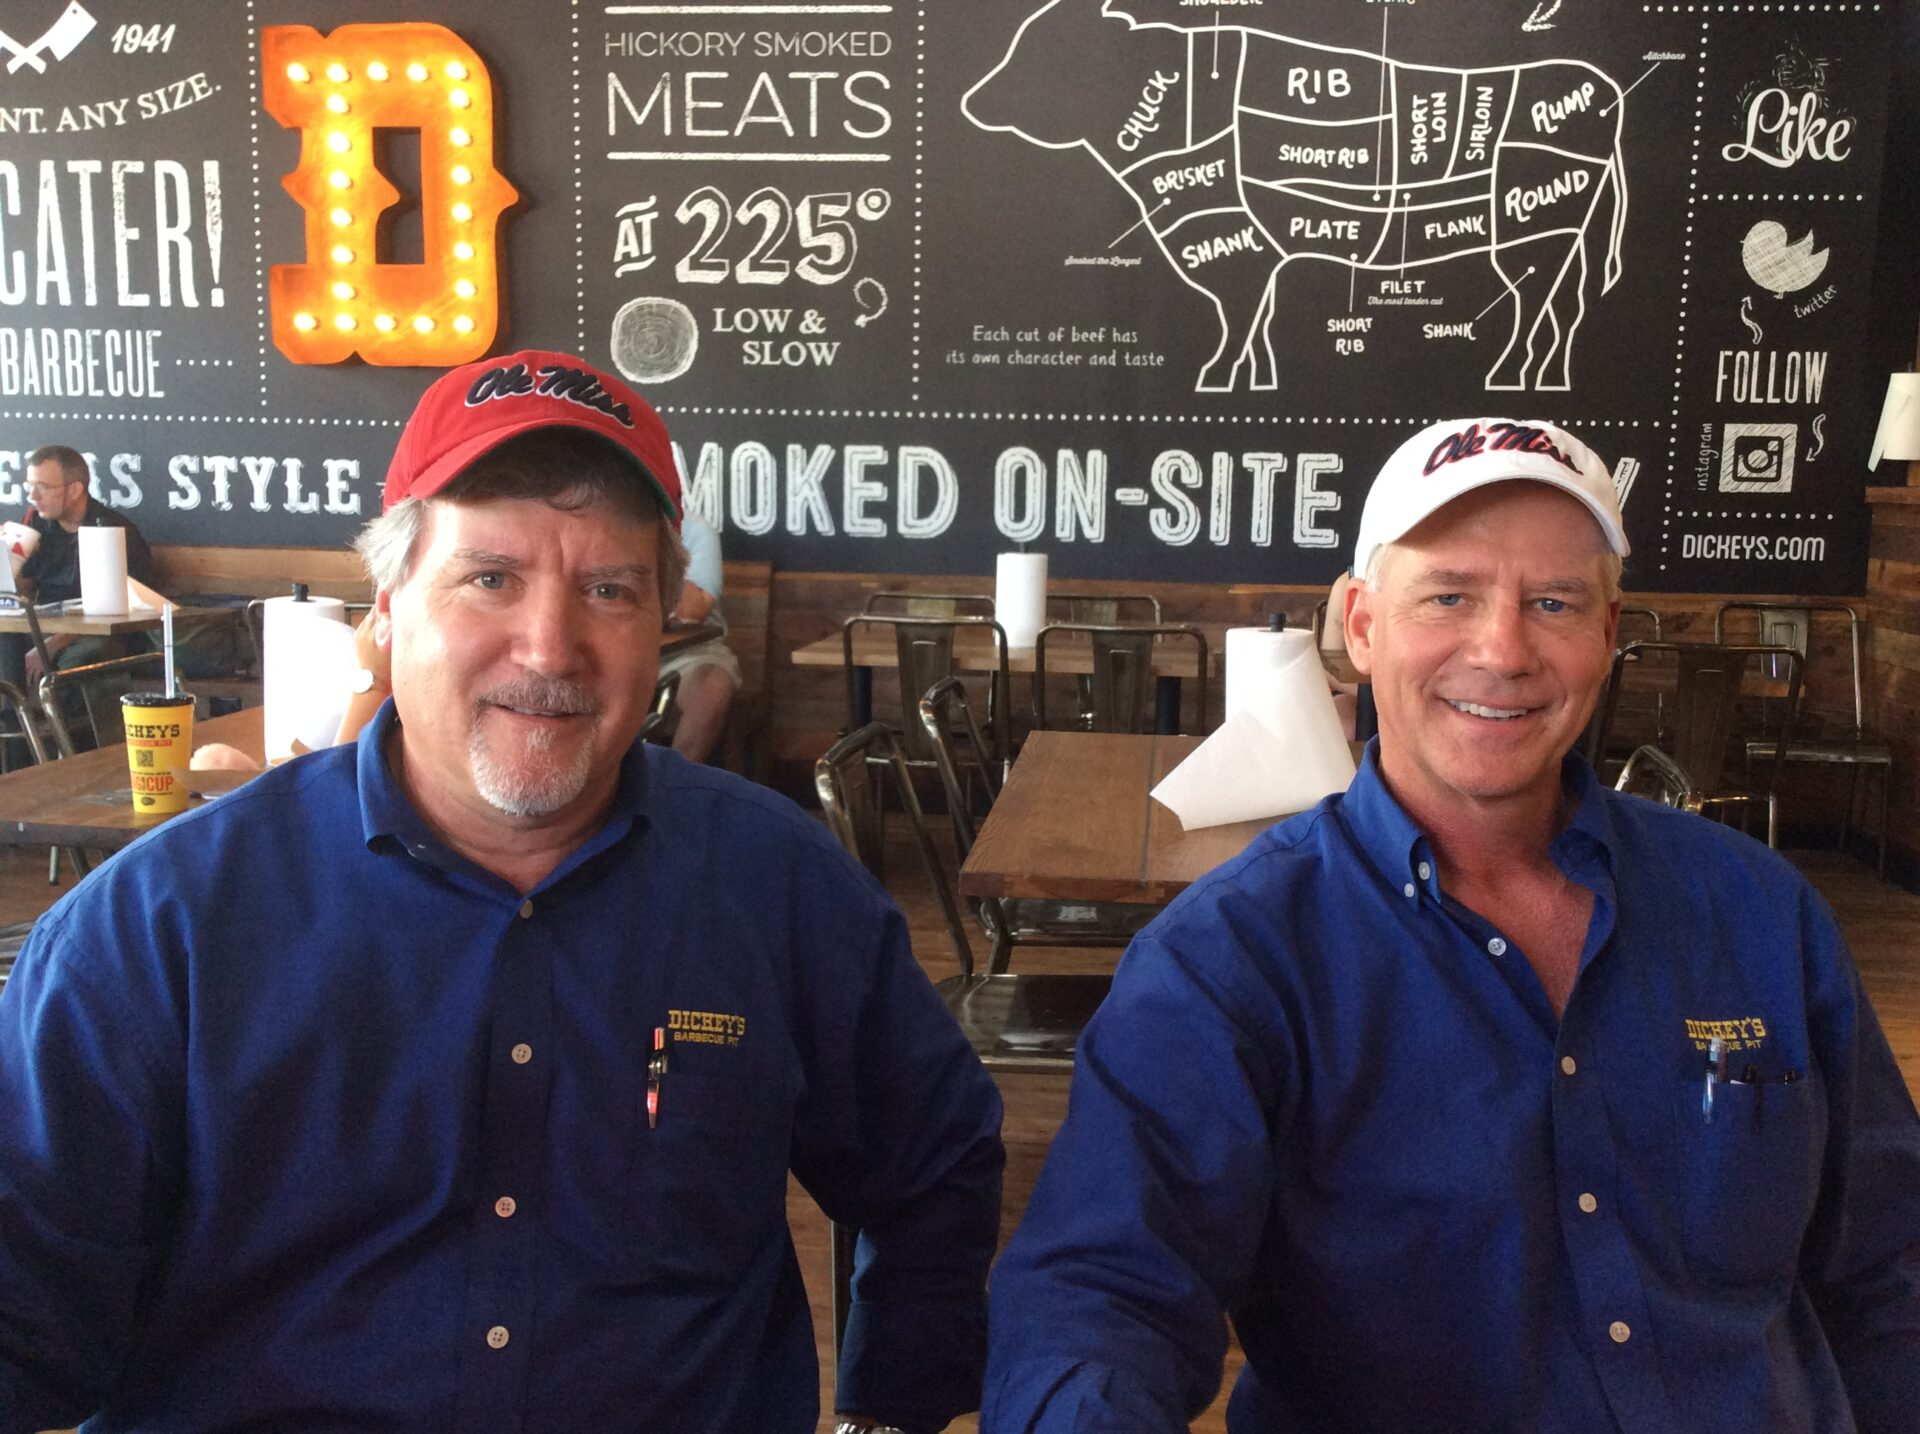 Dickey's Barbecue Pit owners Ray Smith on the left and Jim Rogers on the right. Photos by Liz Foster.